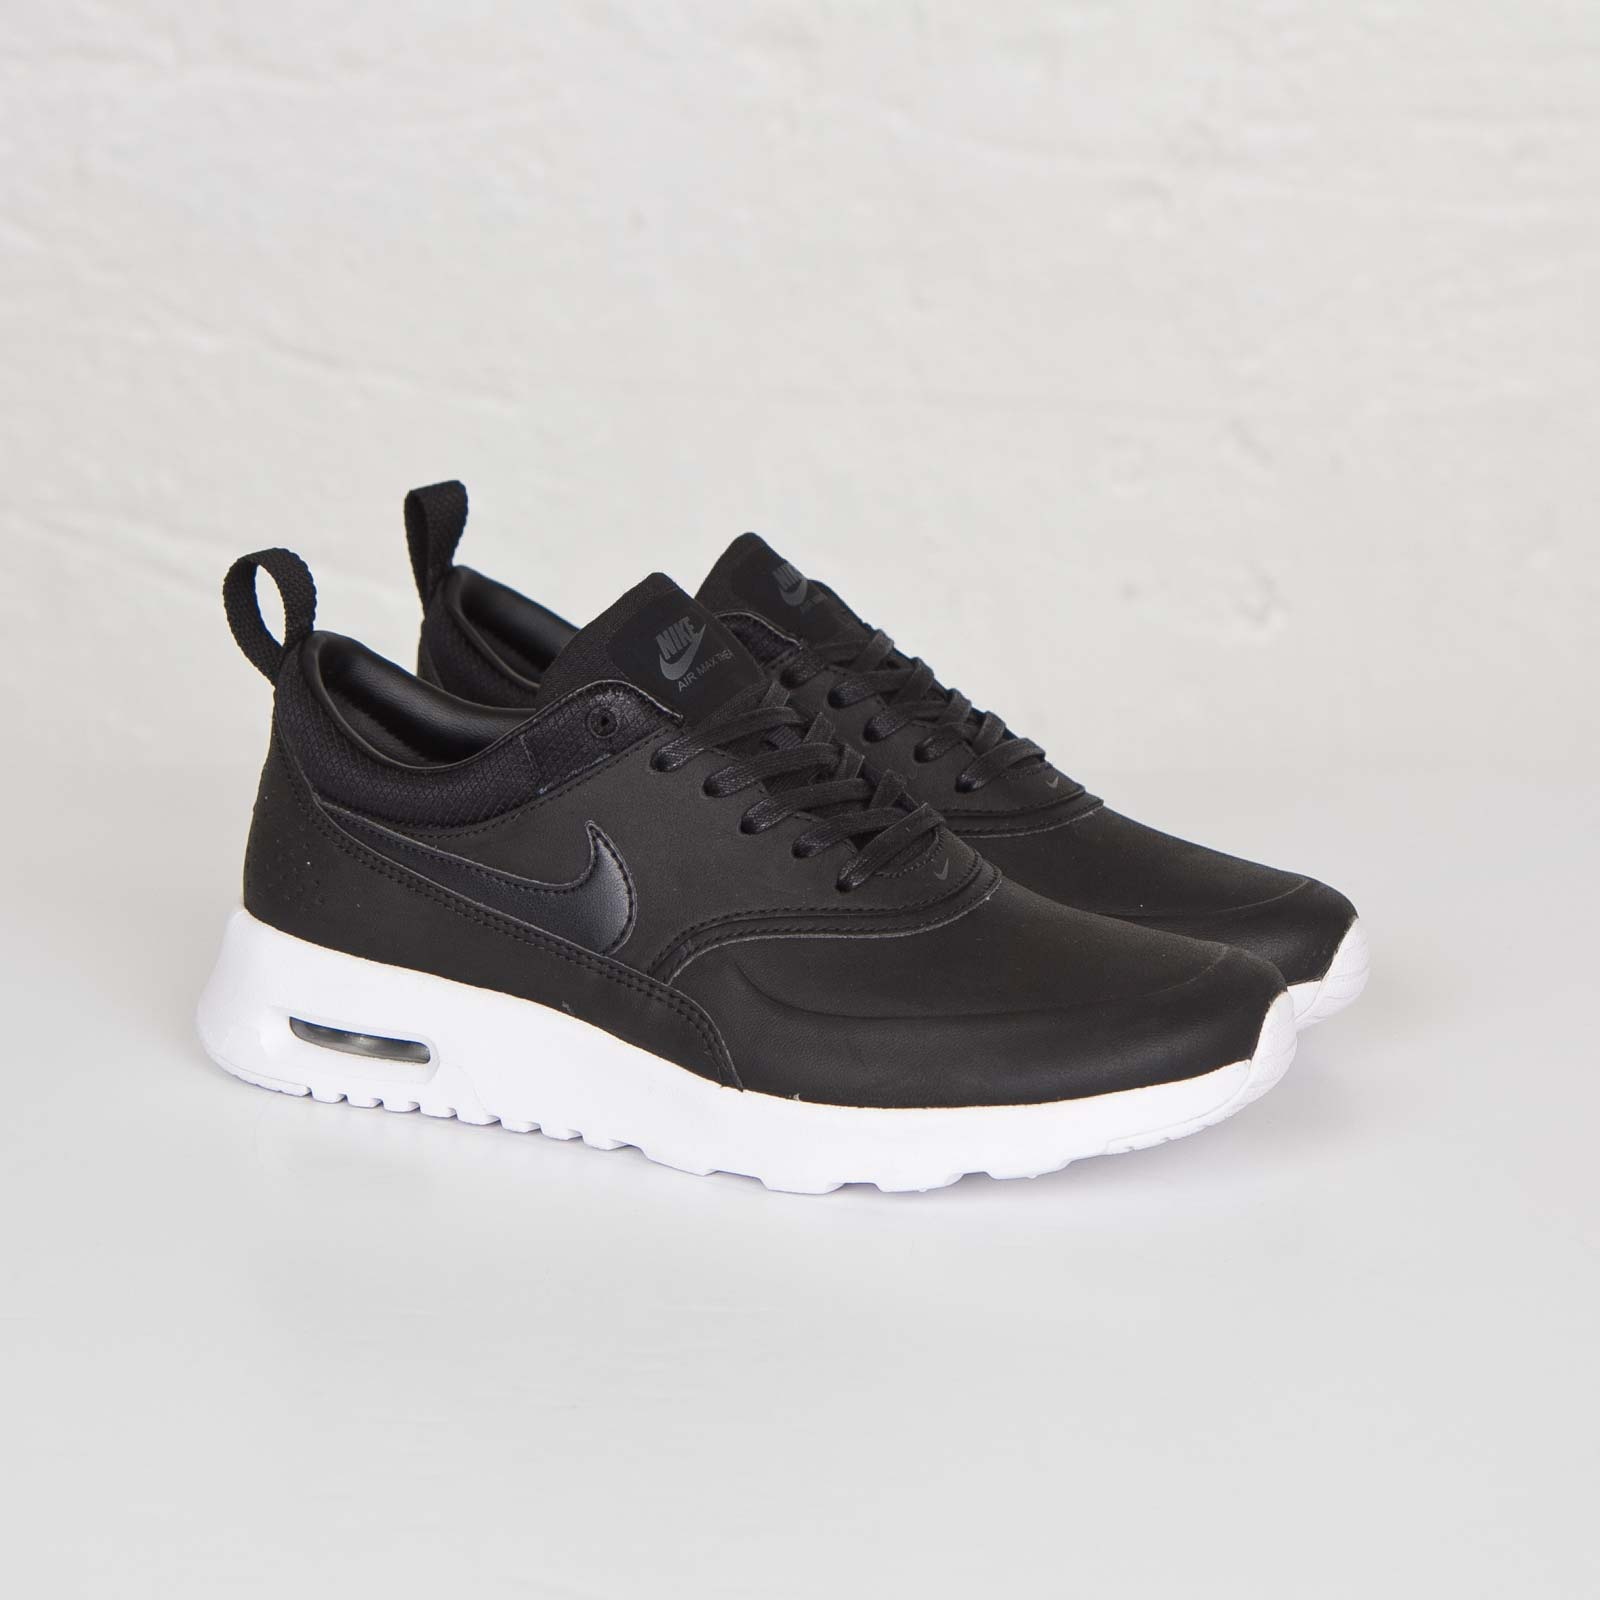 new style 79071 61326 Nike Wmns Air Max Thea Premium